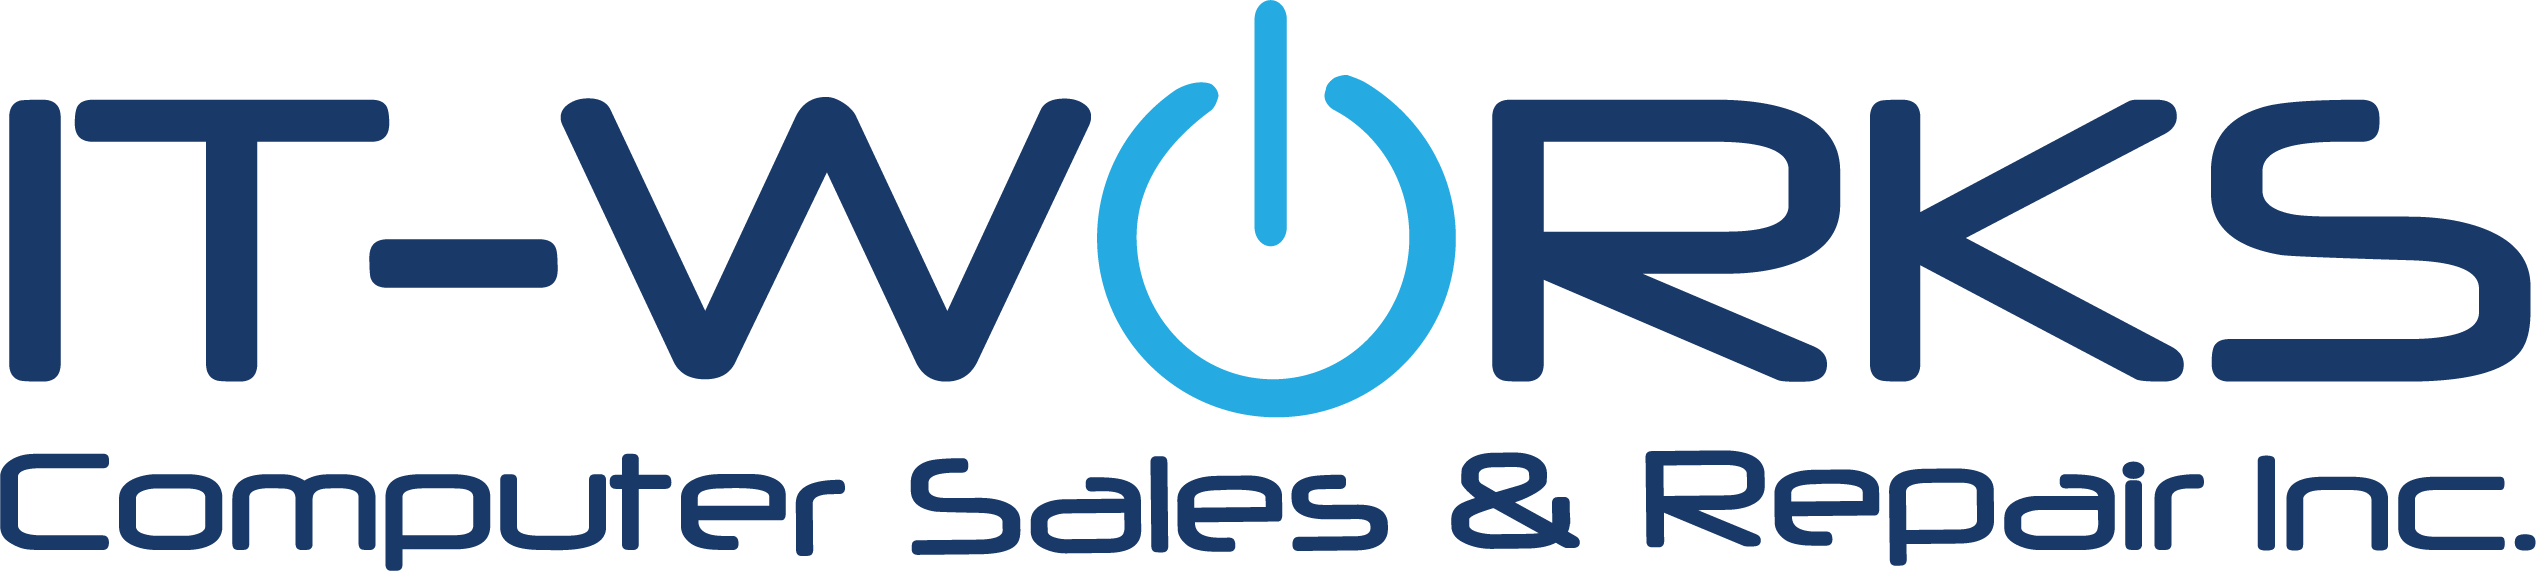 IT-WORKS Computer Sales and Repairs inc logo